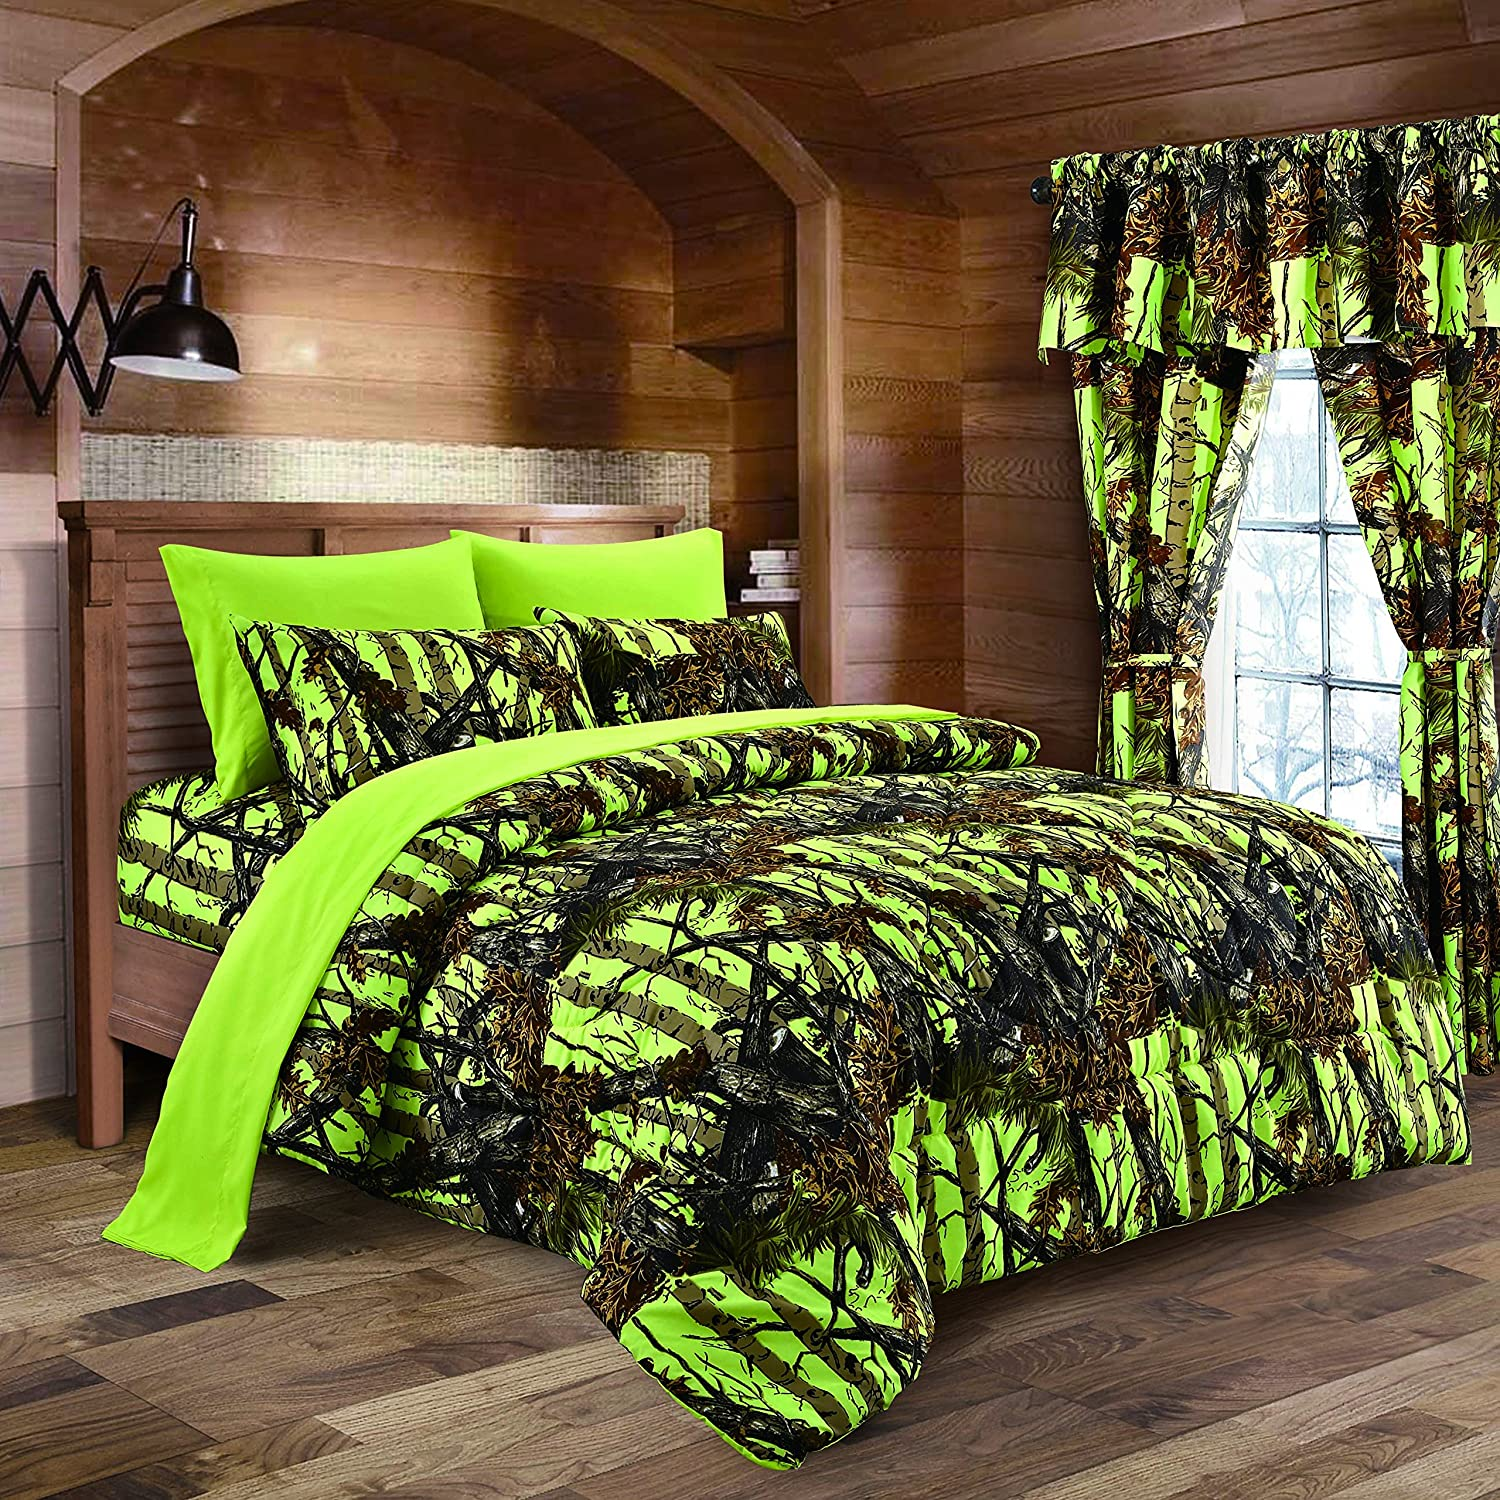 Spring Cleaning Sale - Lime Camouflage King Size 8pc Comforter, Sheet, Pillowcases, and Bed Skirt Set - Camo Bedding Sheet Set for Hunters Teens Boys and Girls